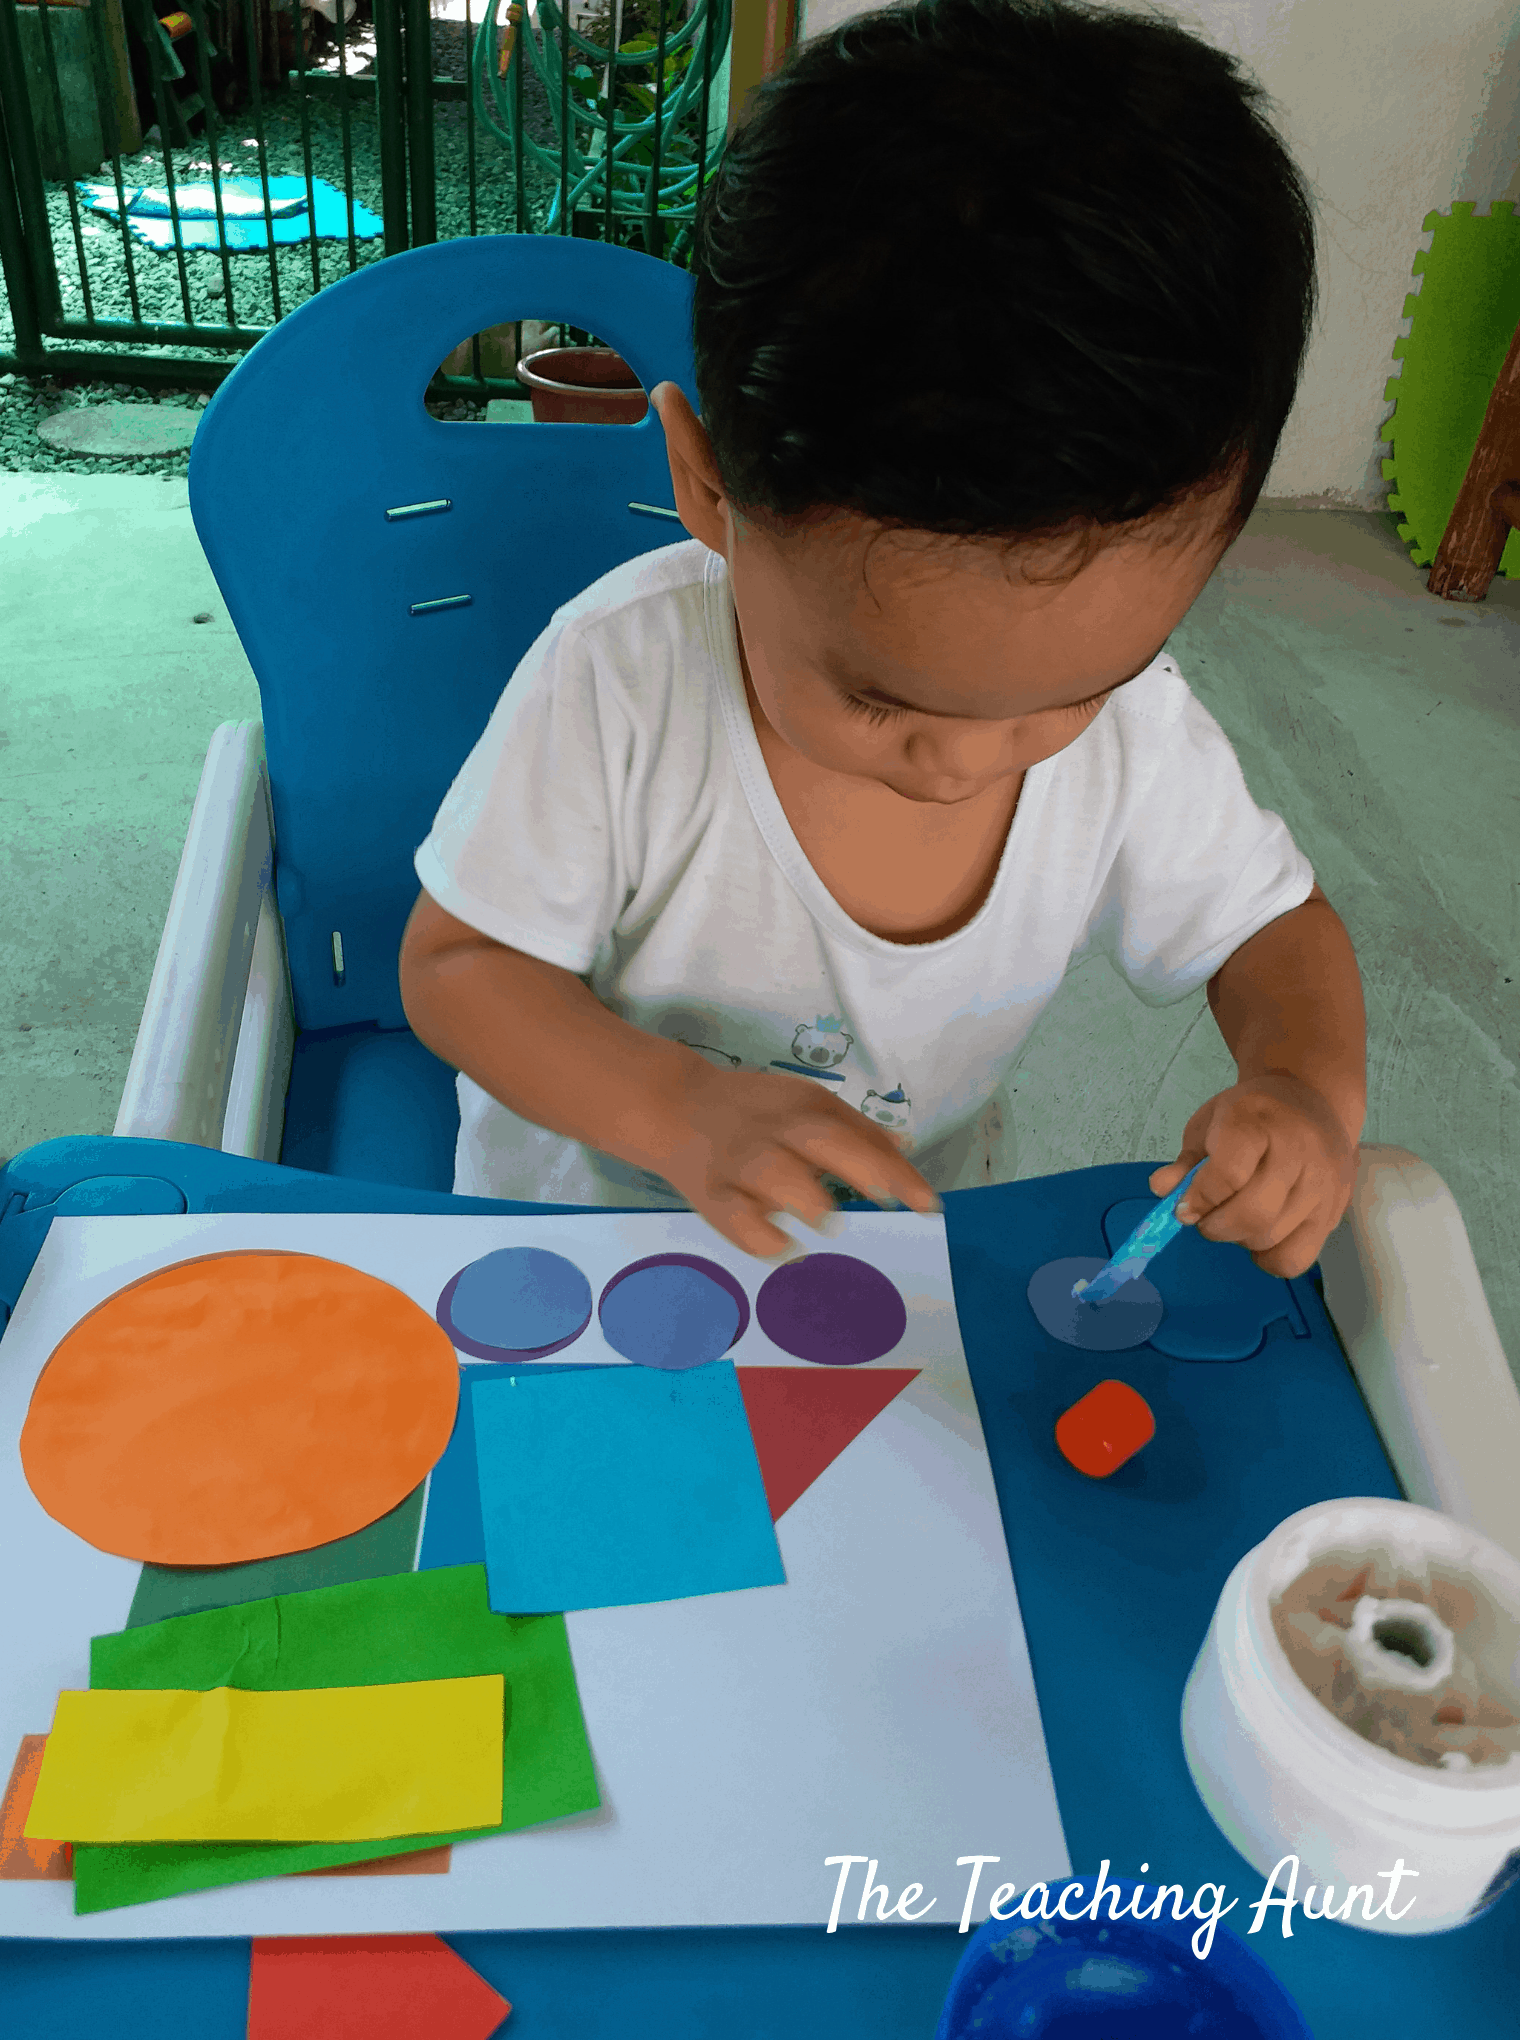 Train shapes Pasting: Toddler Using Glue